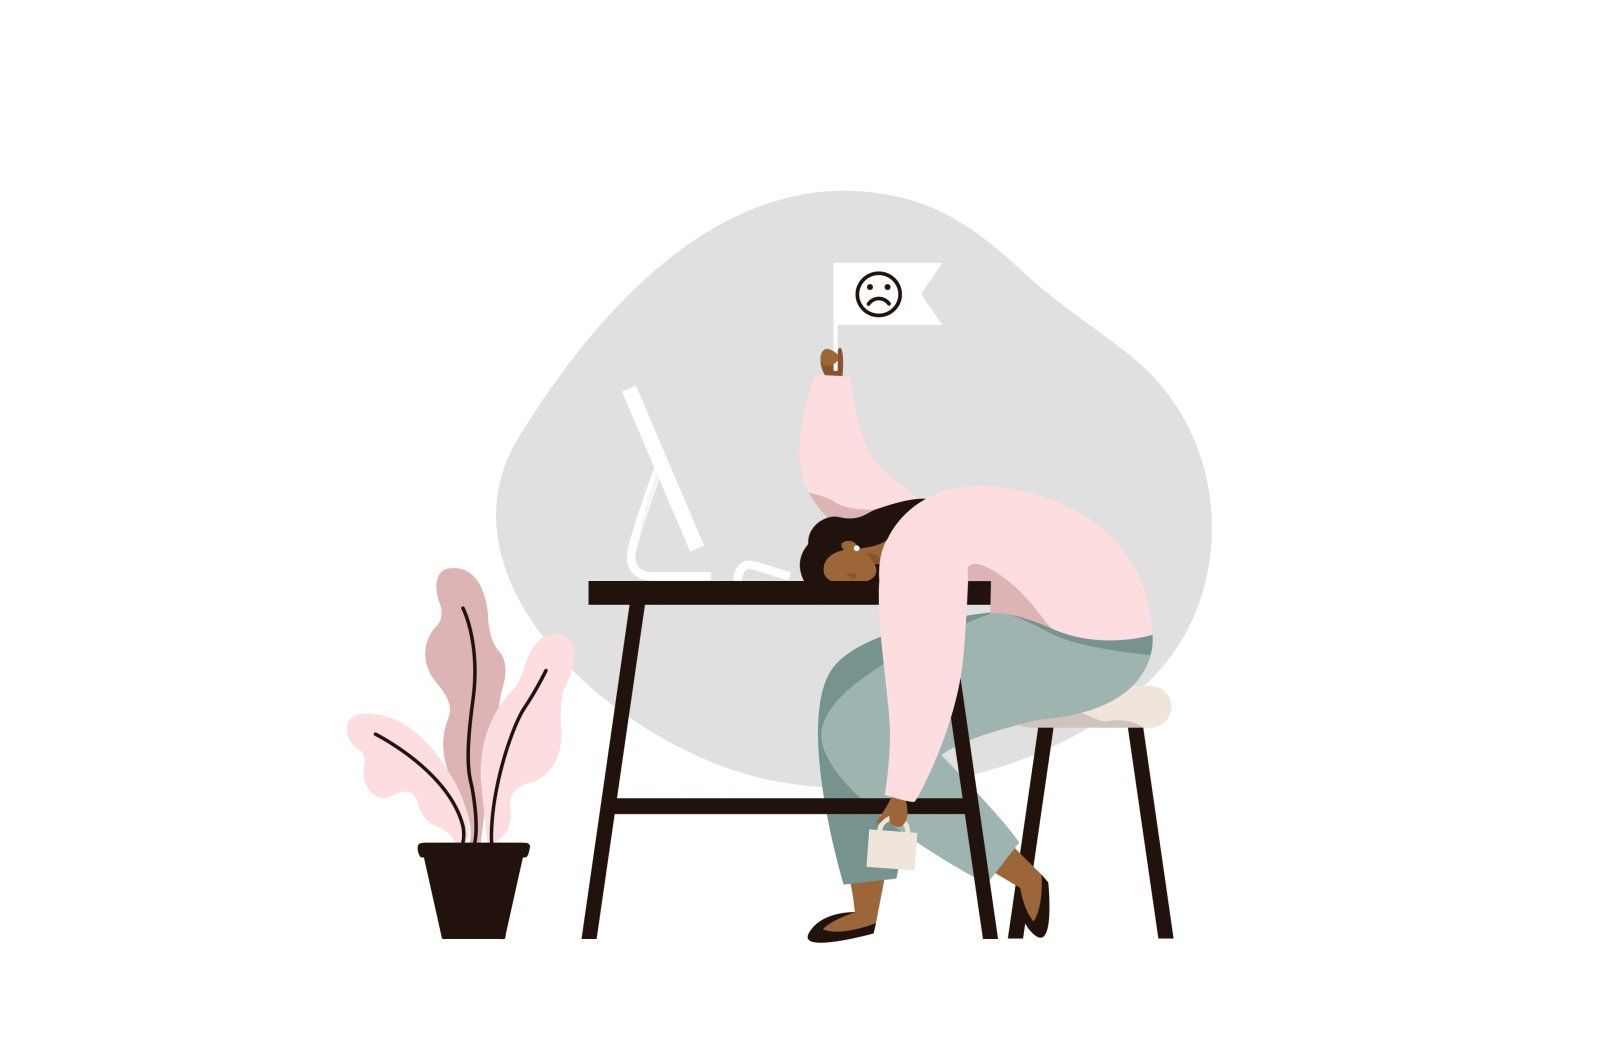 A female worker is overwhelmed and drained by her workload in this depiction of occupational burnout. (iStock Photo)